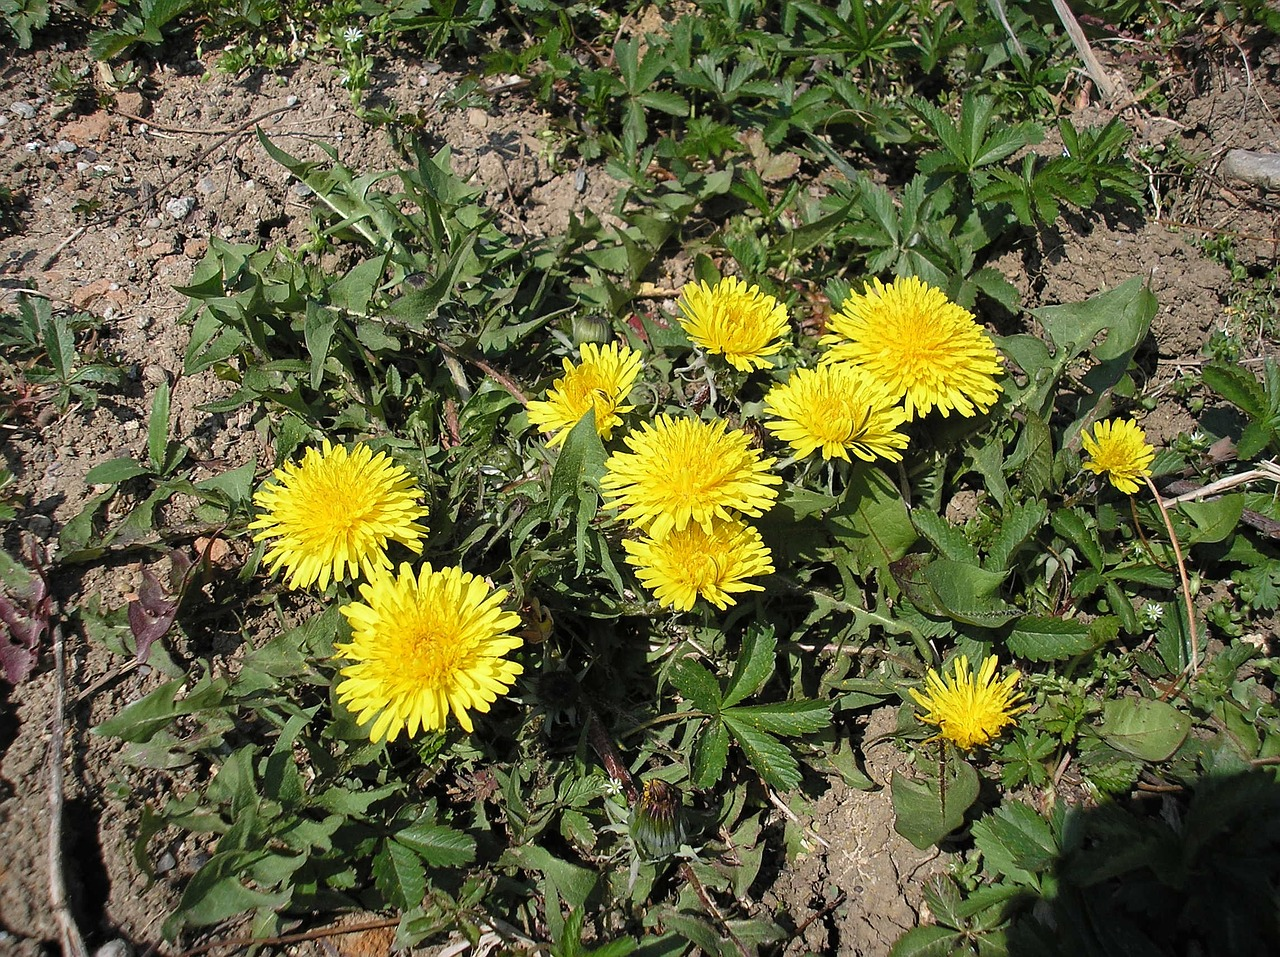 dandelions,yellow,nature,dandelion,meadow,weed,weeds,environment,rural,flowers,outdoors,free pictures, free photos, free images, royalty free, free illustrations, public domain